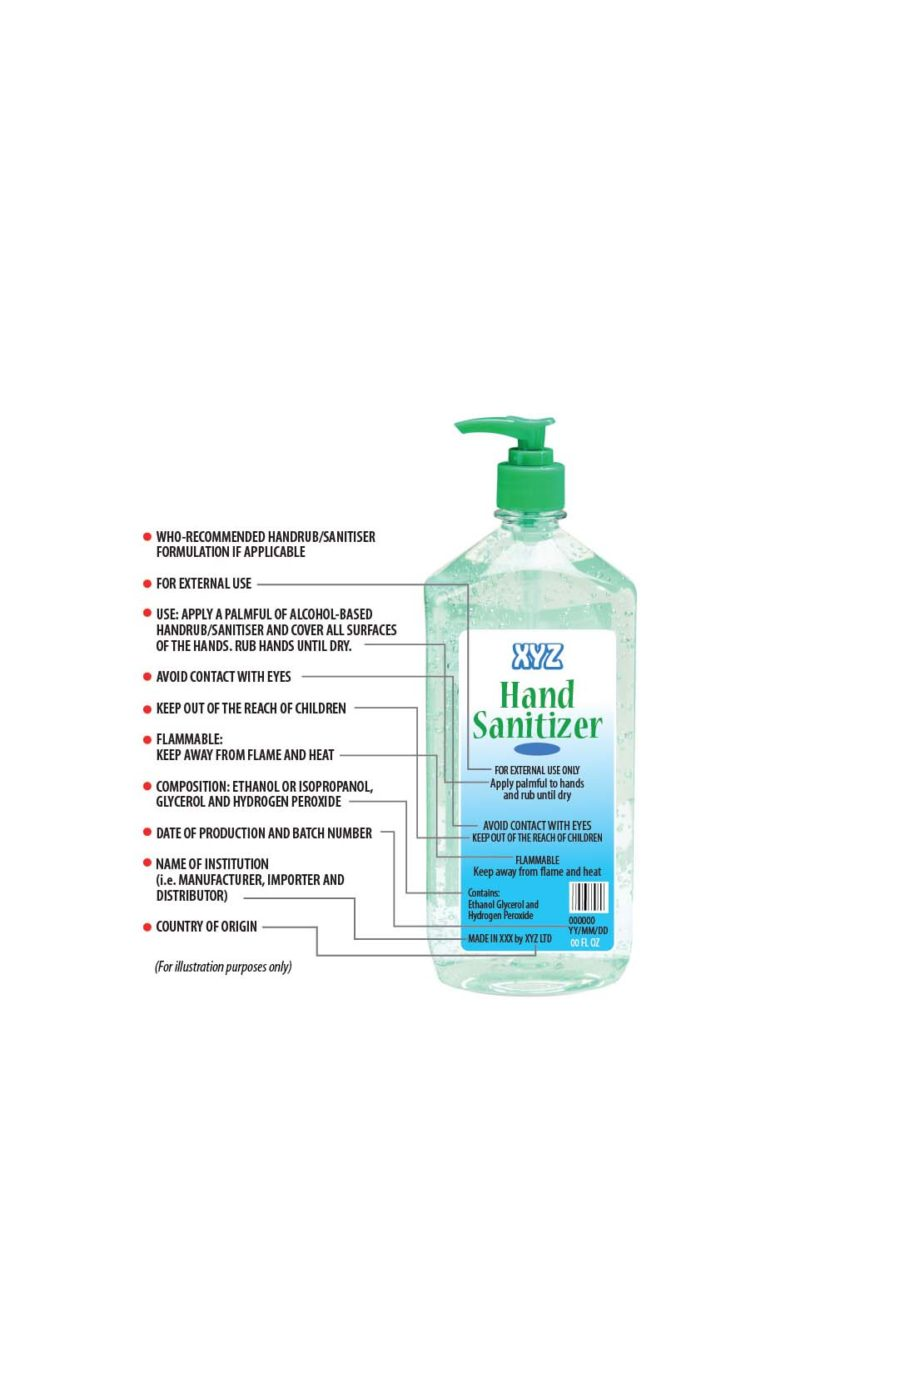 Ministry Warns about Toxic Hand Sanitisers